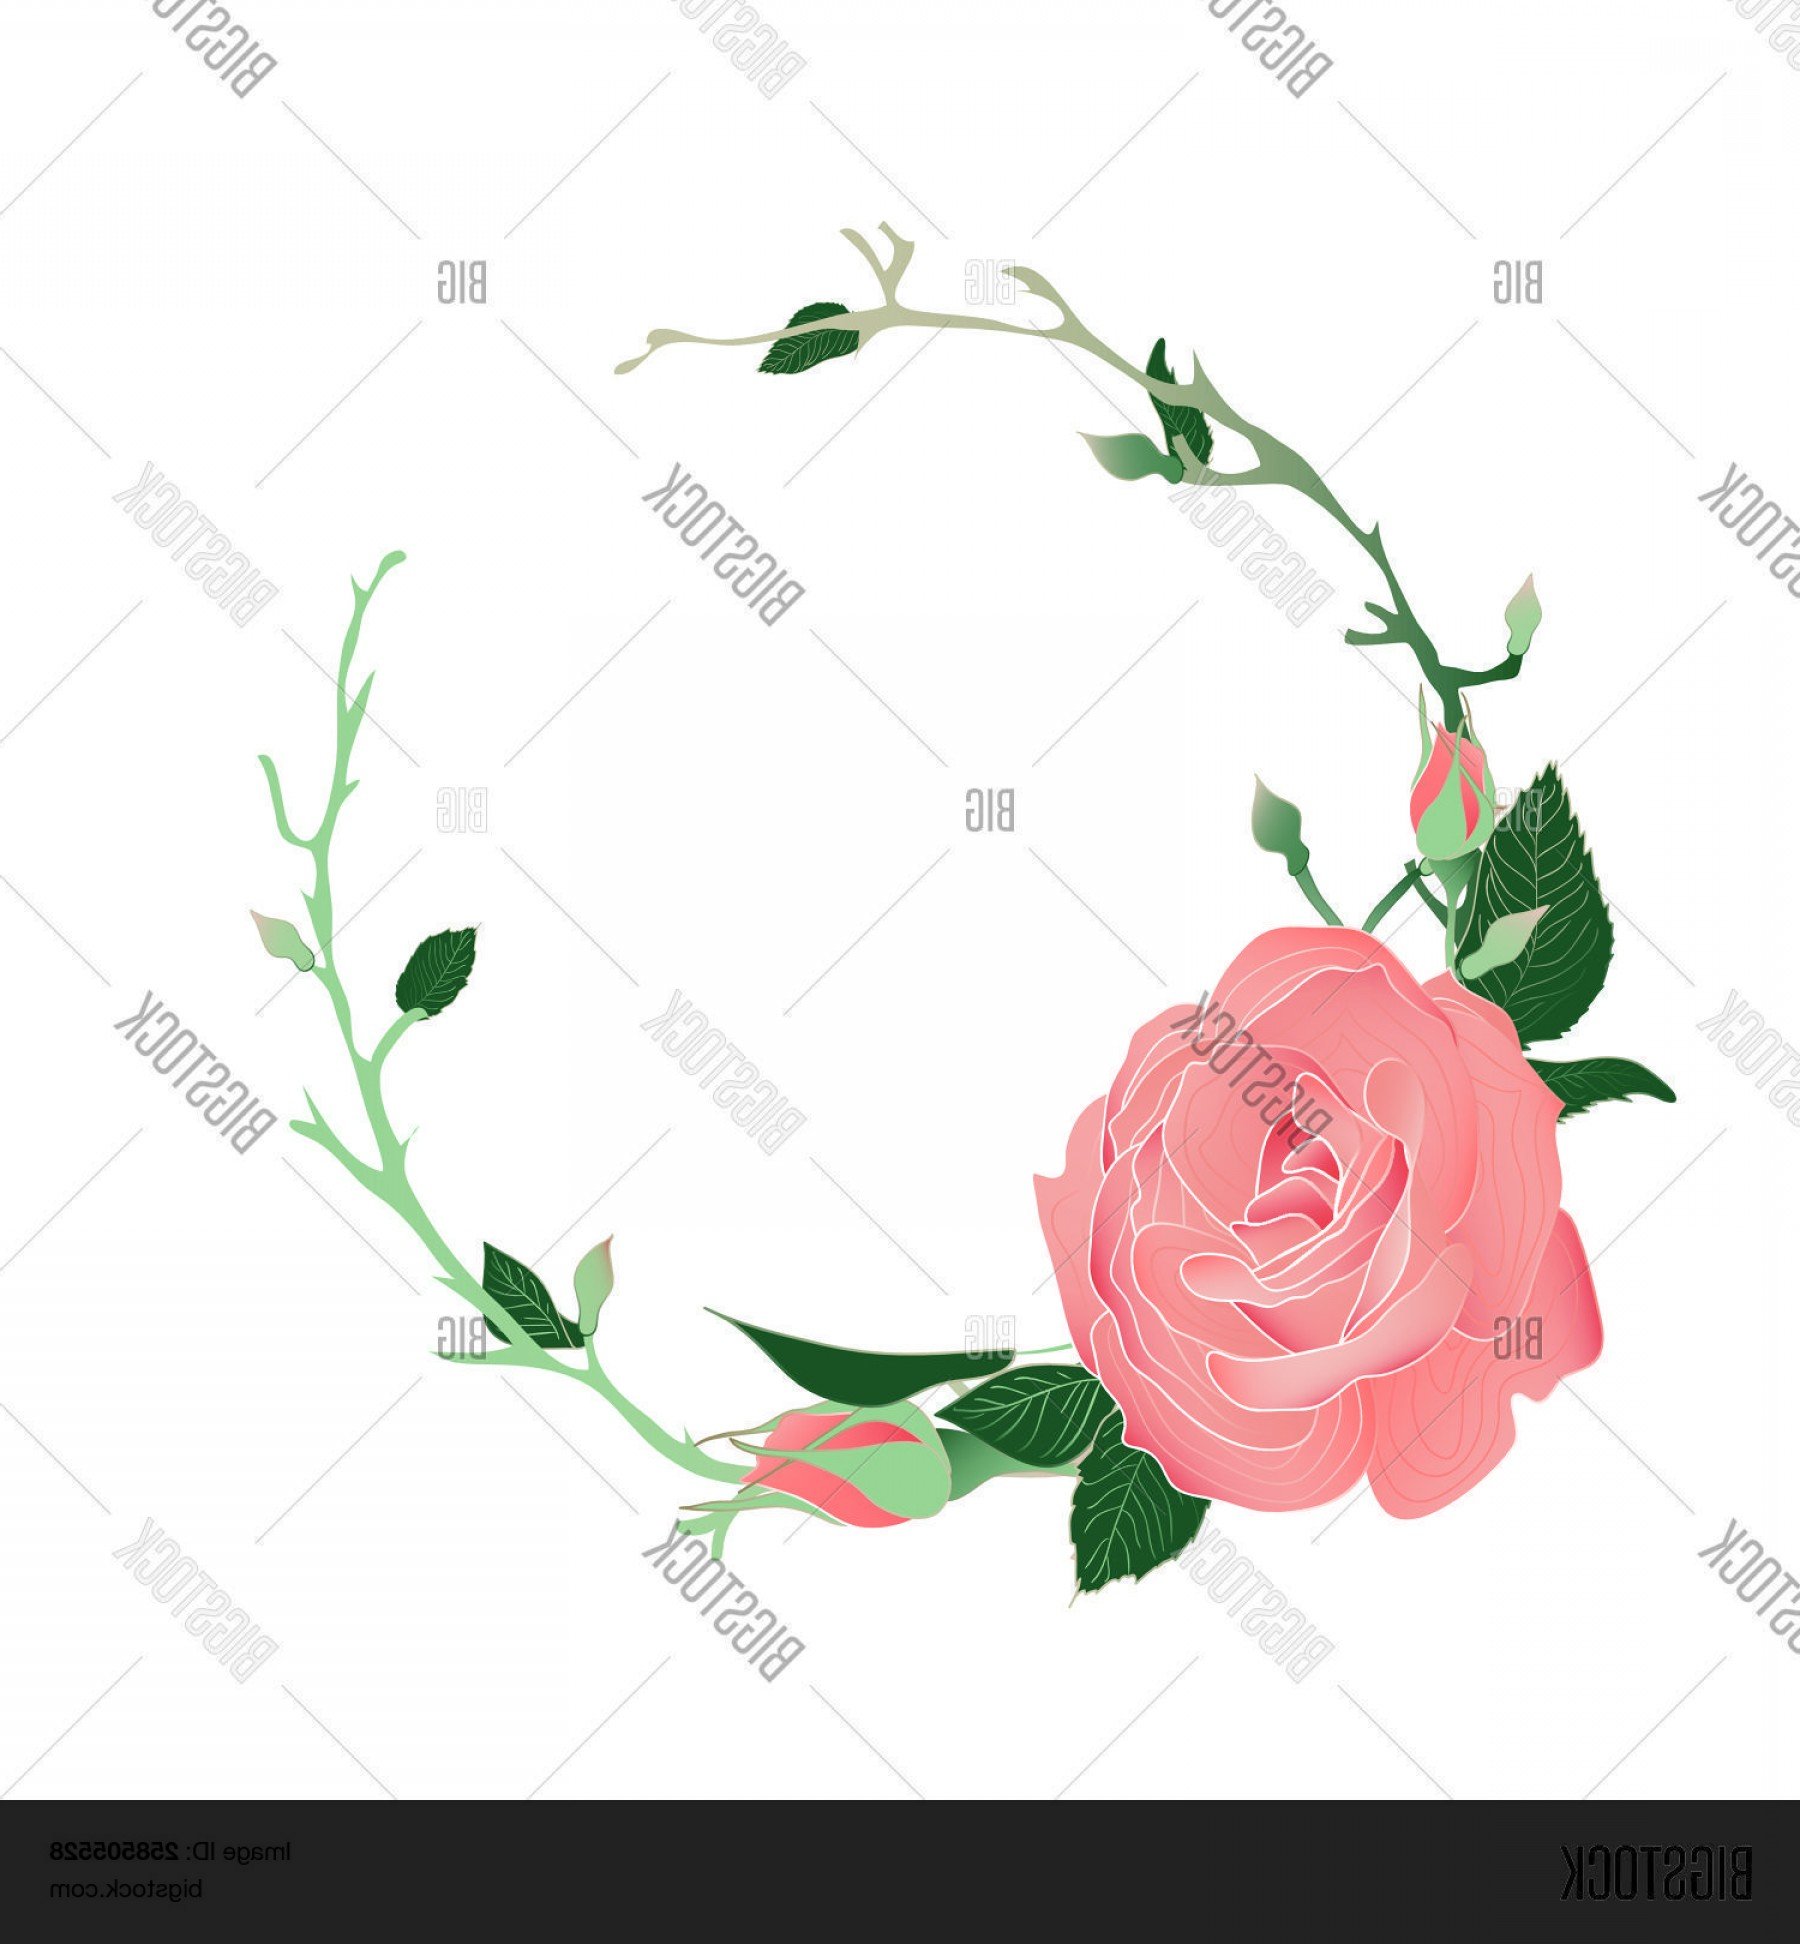 Vector Image Of A Budding Flower: Stock Vector Blooming And Budding Pink Rose Flowers Wreath